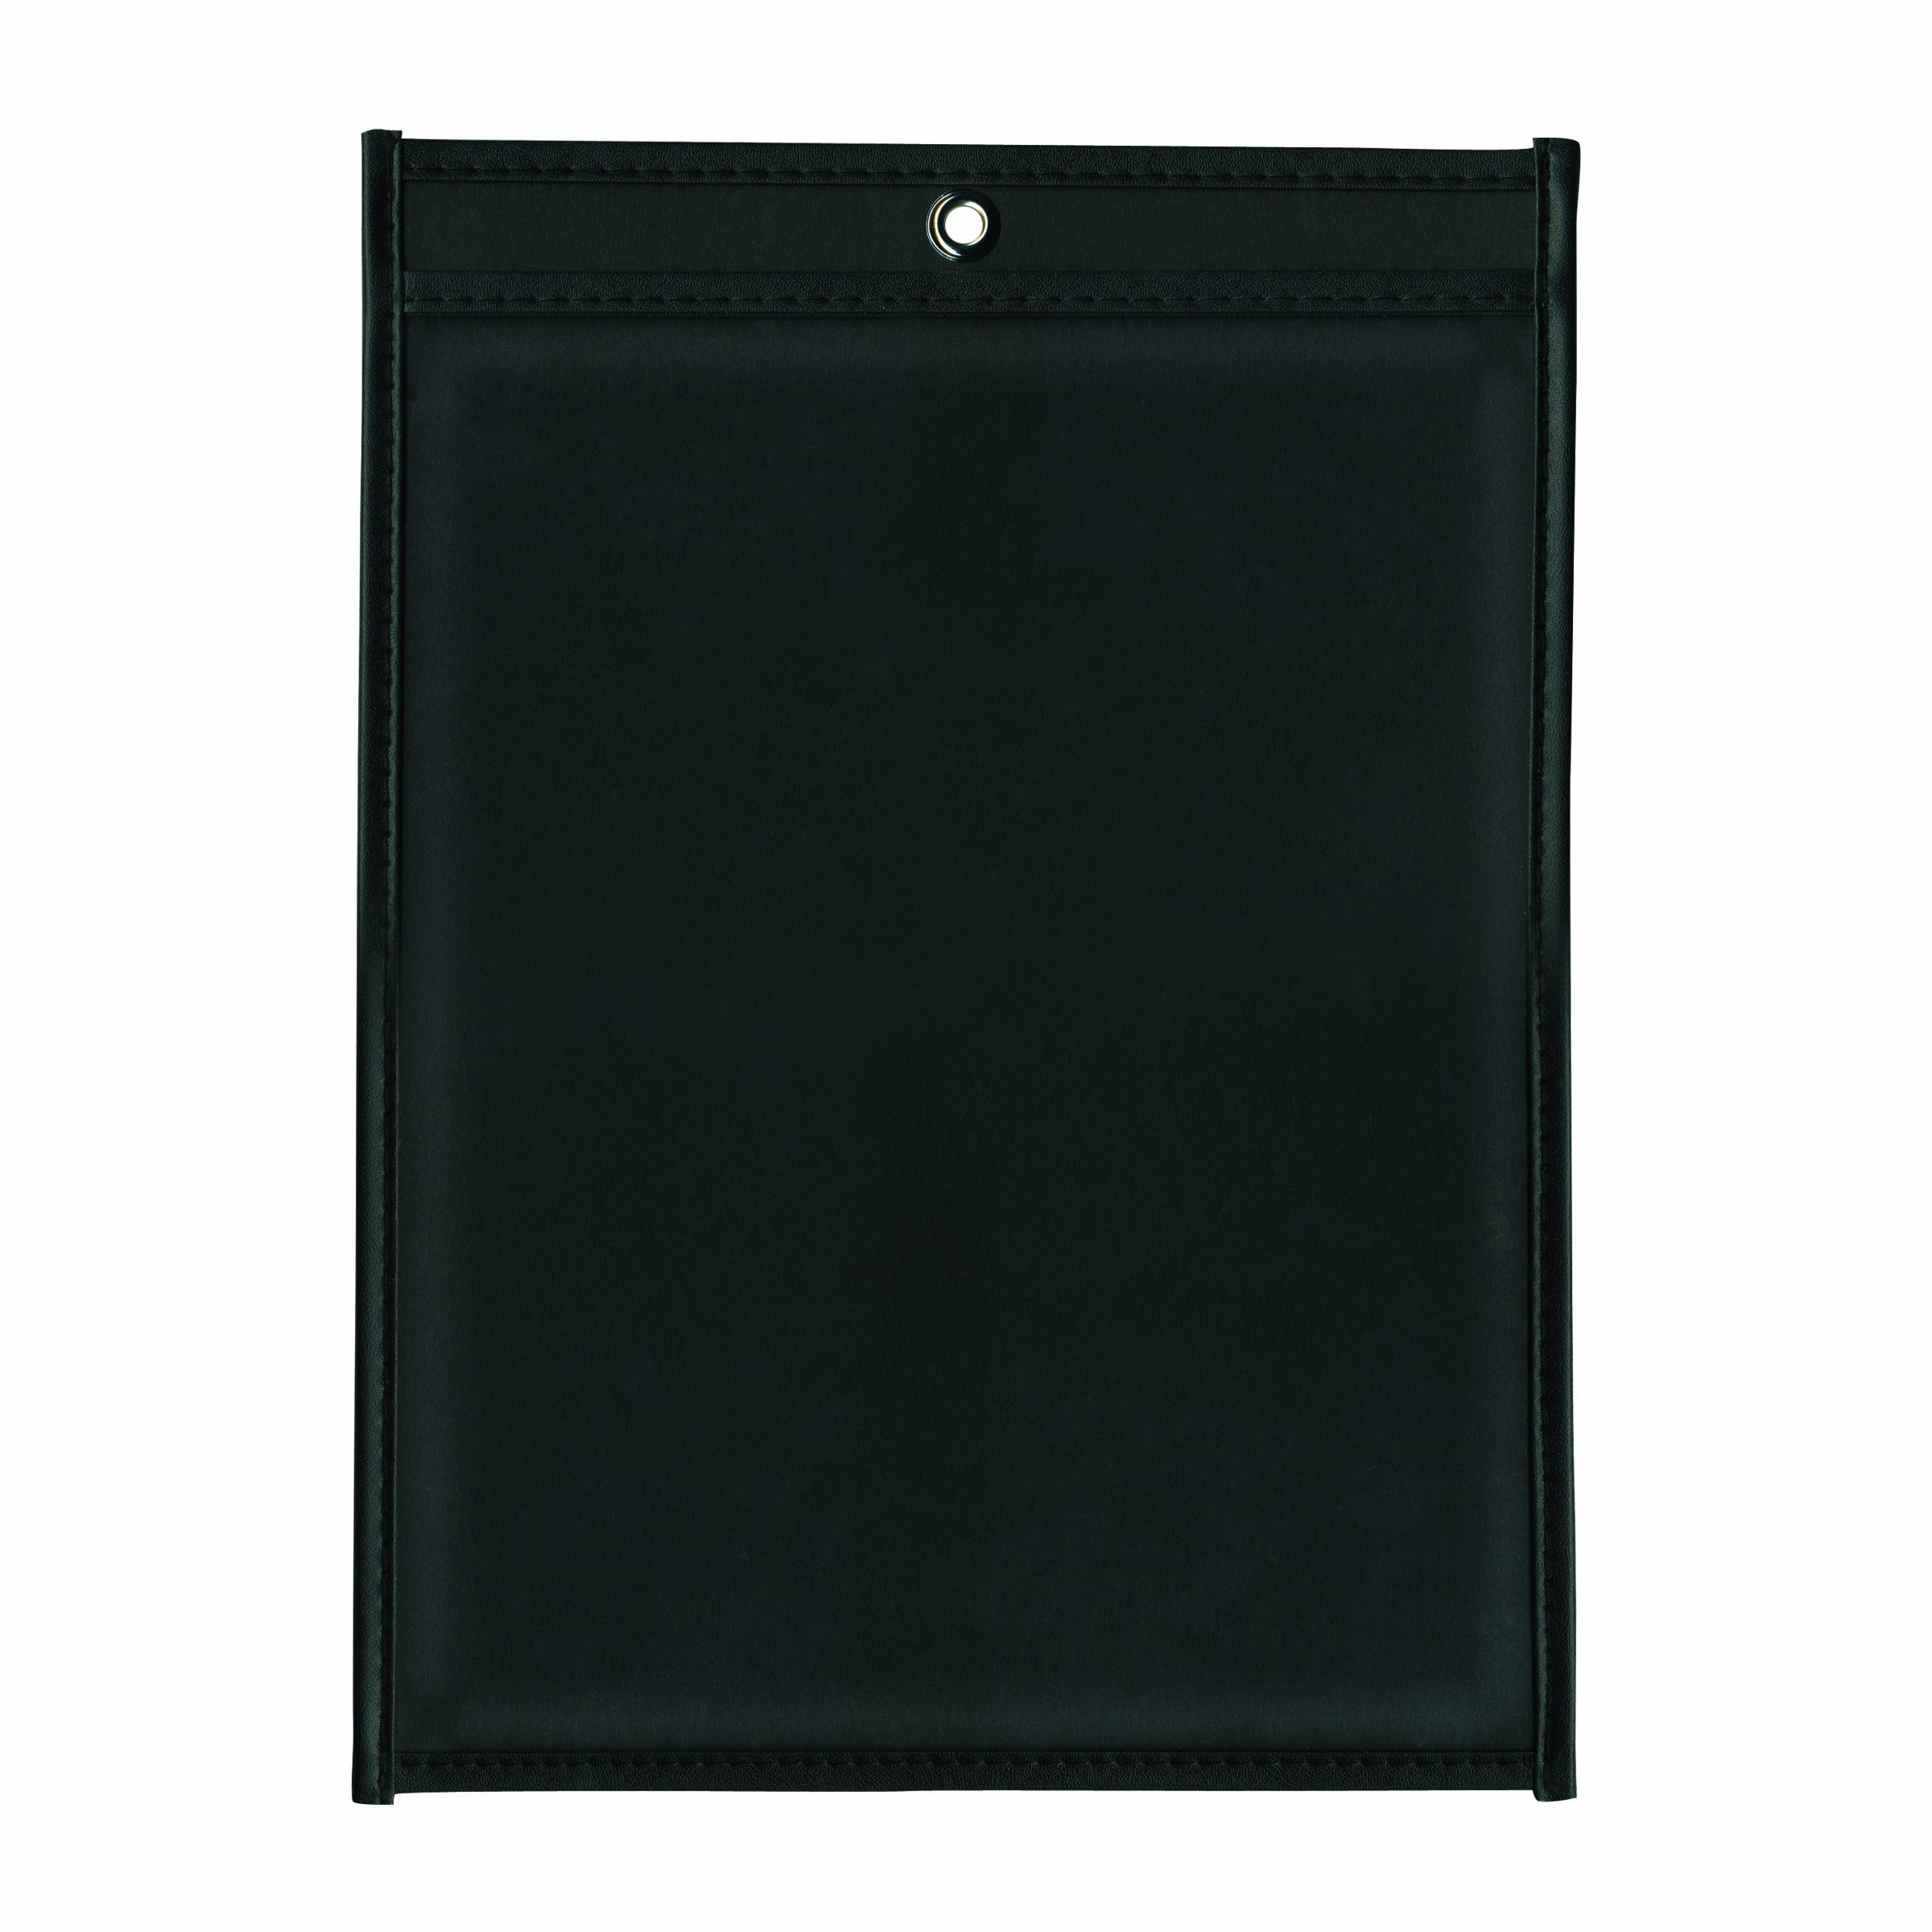 ADVANTUS Job Ticket Holders, 11 x 17 Inches, Clear Cover, Black Back, 25-Count (ANG1577)